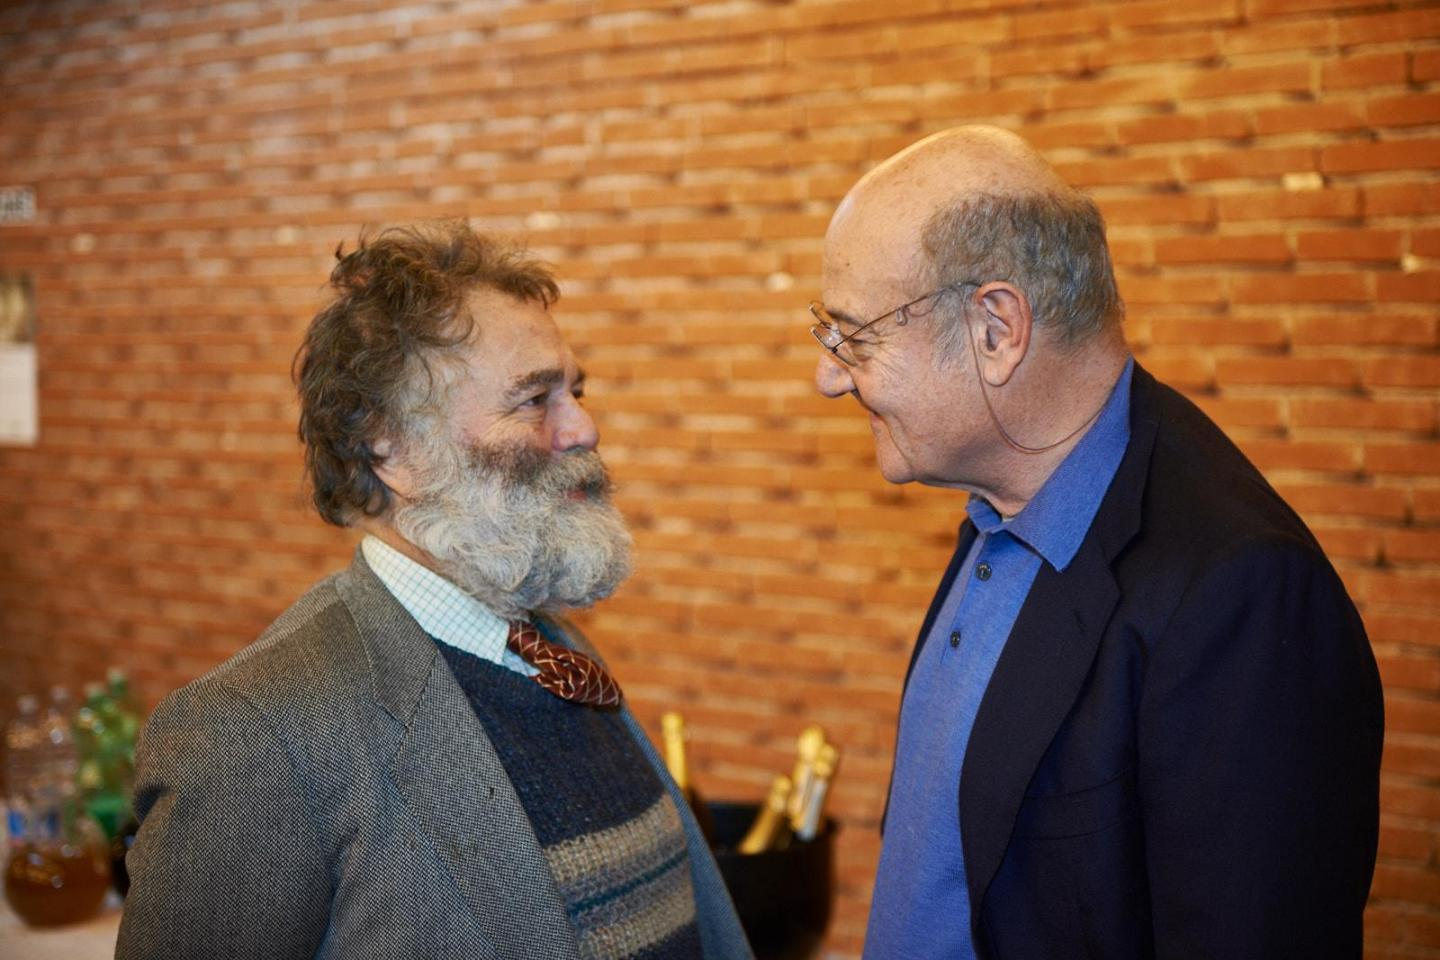 Gabriele Nissim with the gallery owner Jean Blachaert